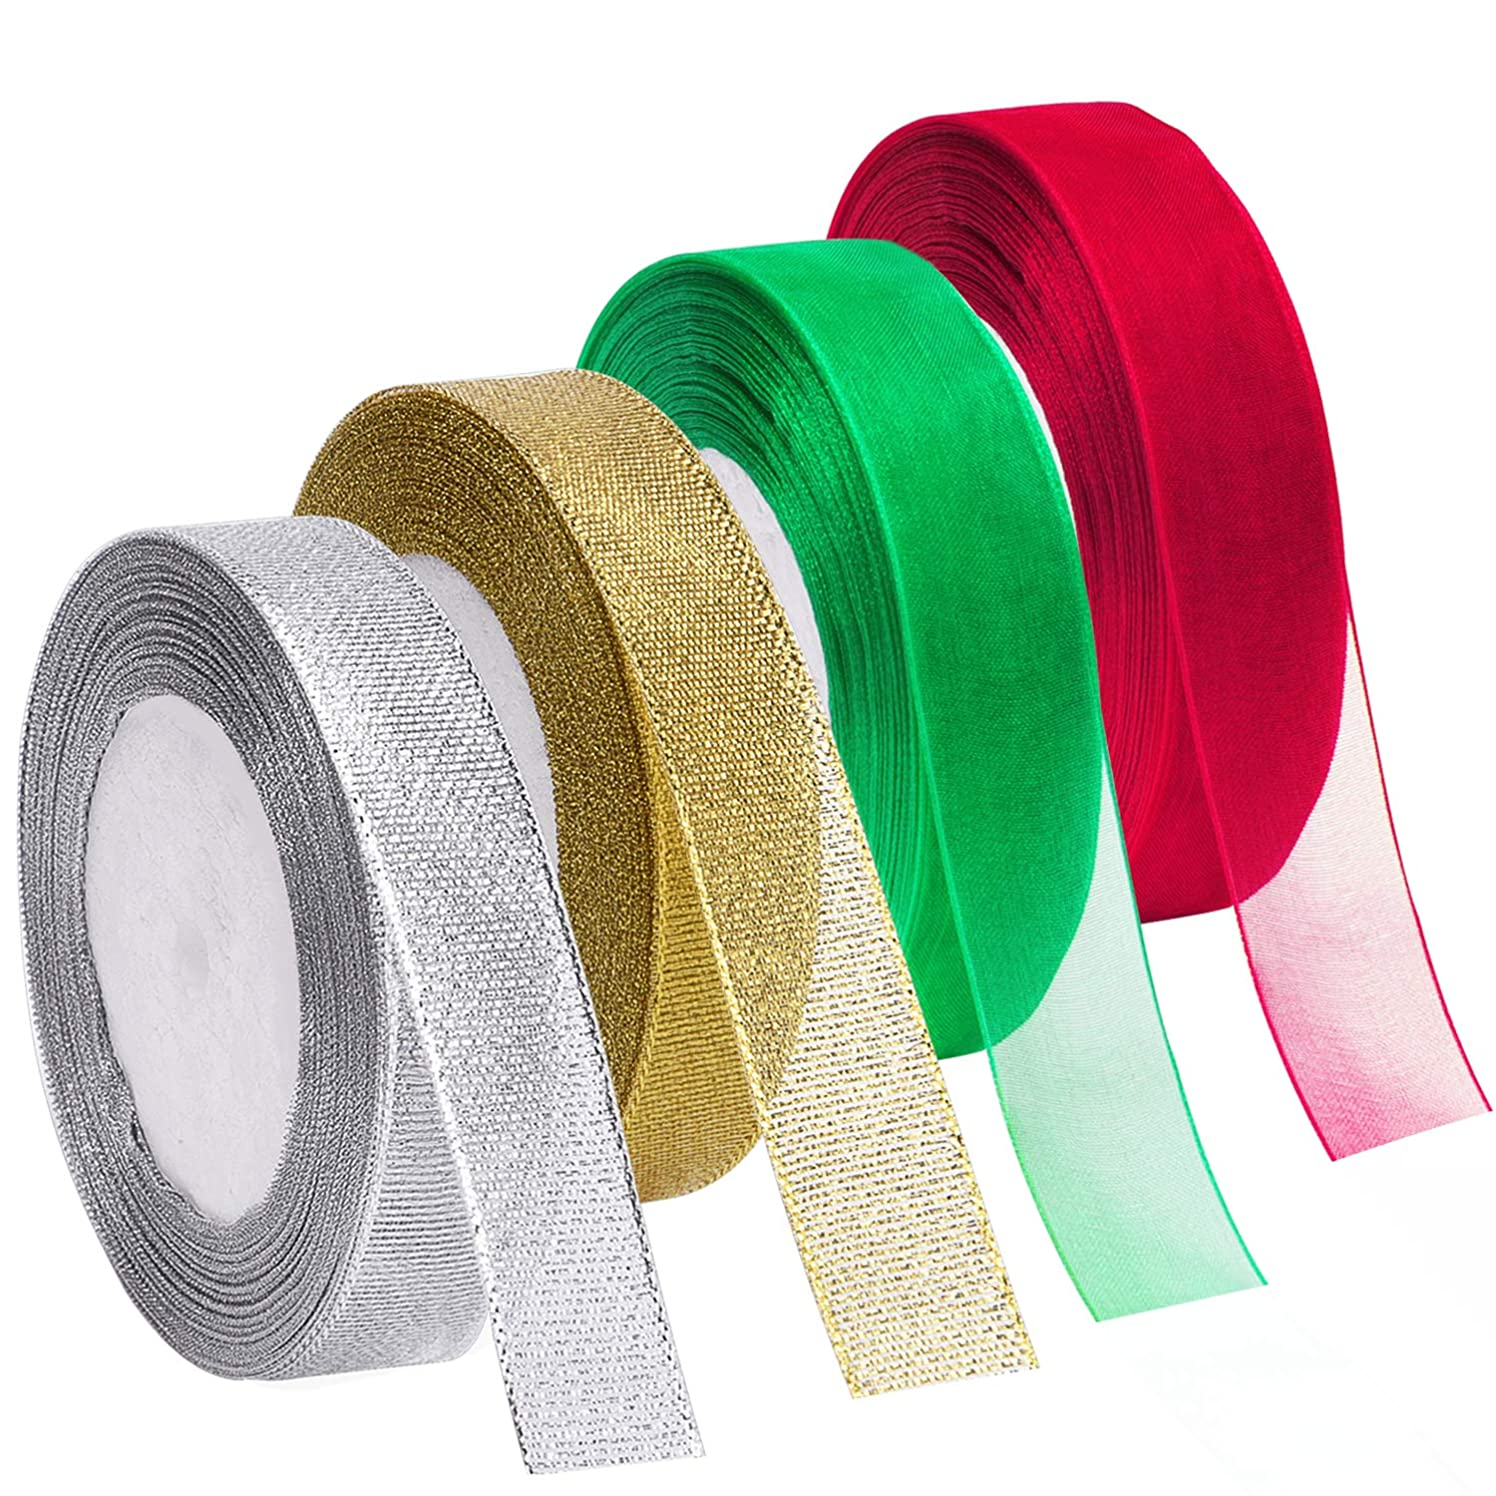 Livder 4 Rolls 4/5 Inch in Width Christmas Metallic Glitter Organza Ribbons Golden, Silvery, Red, Green Ribbon for Gift Wrapping, Christmas Tree Room Decoration